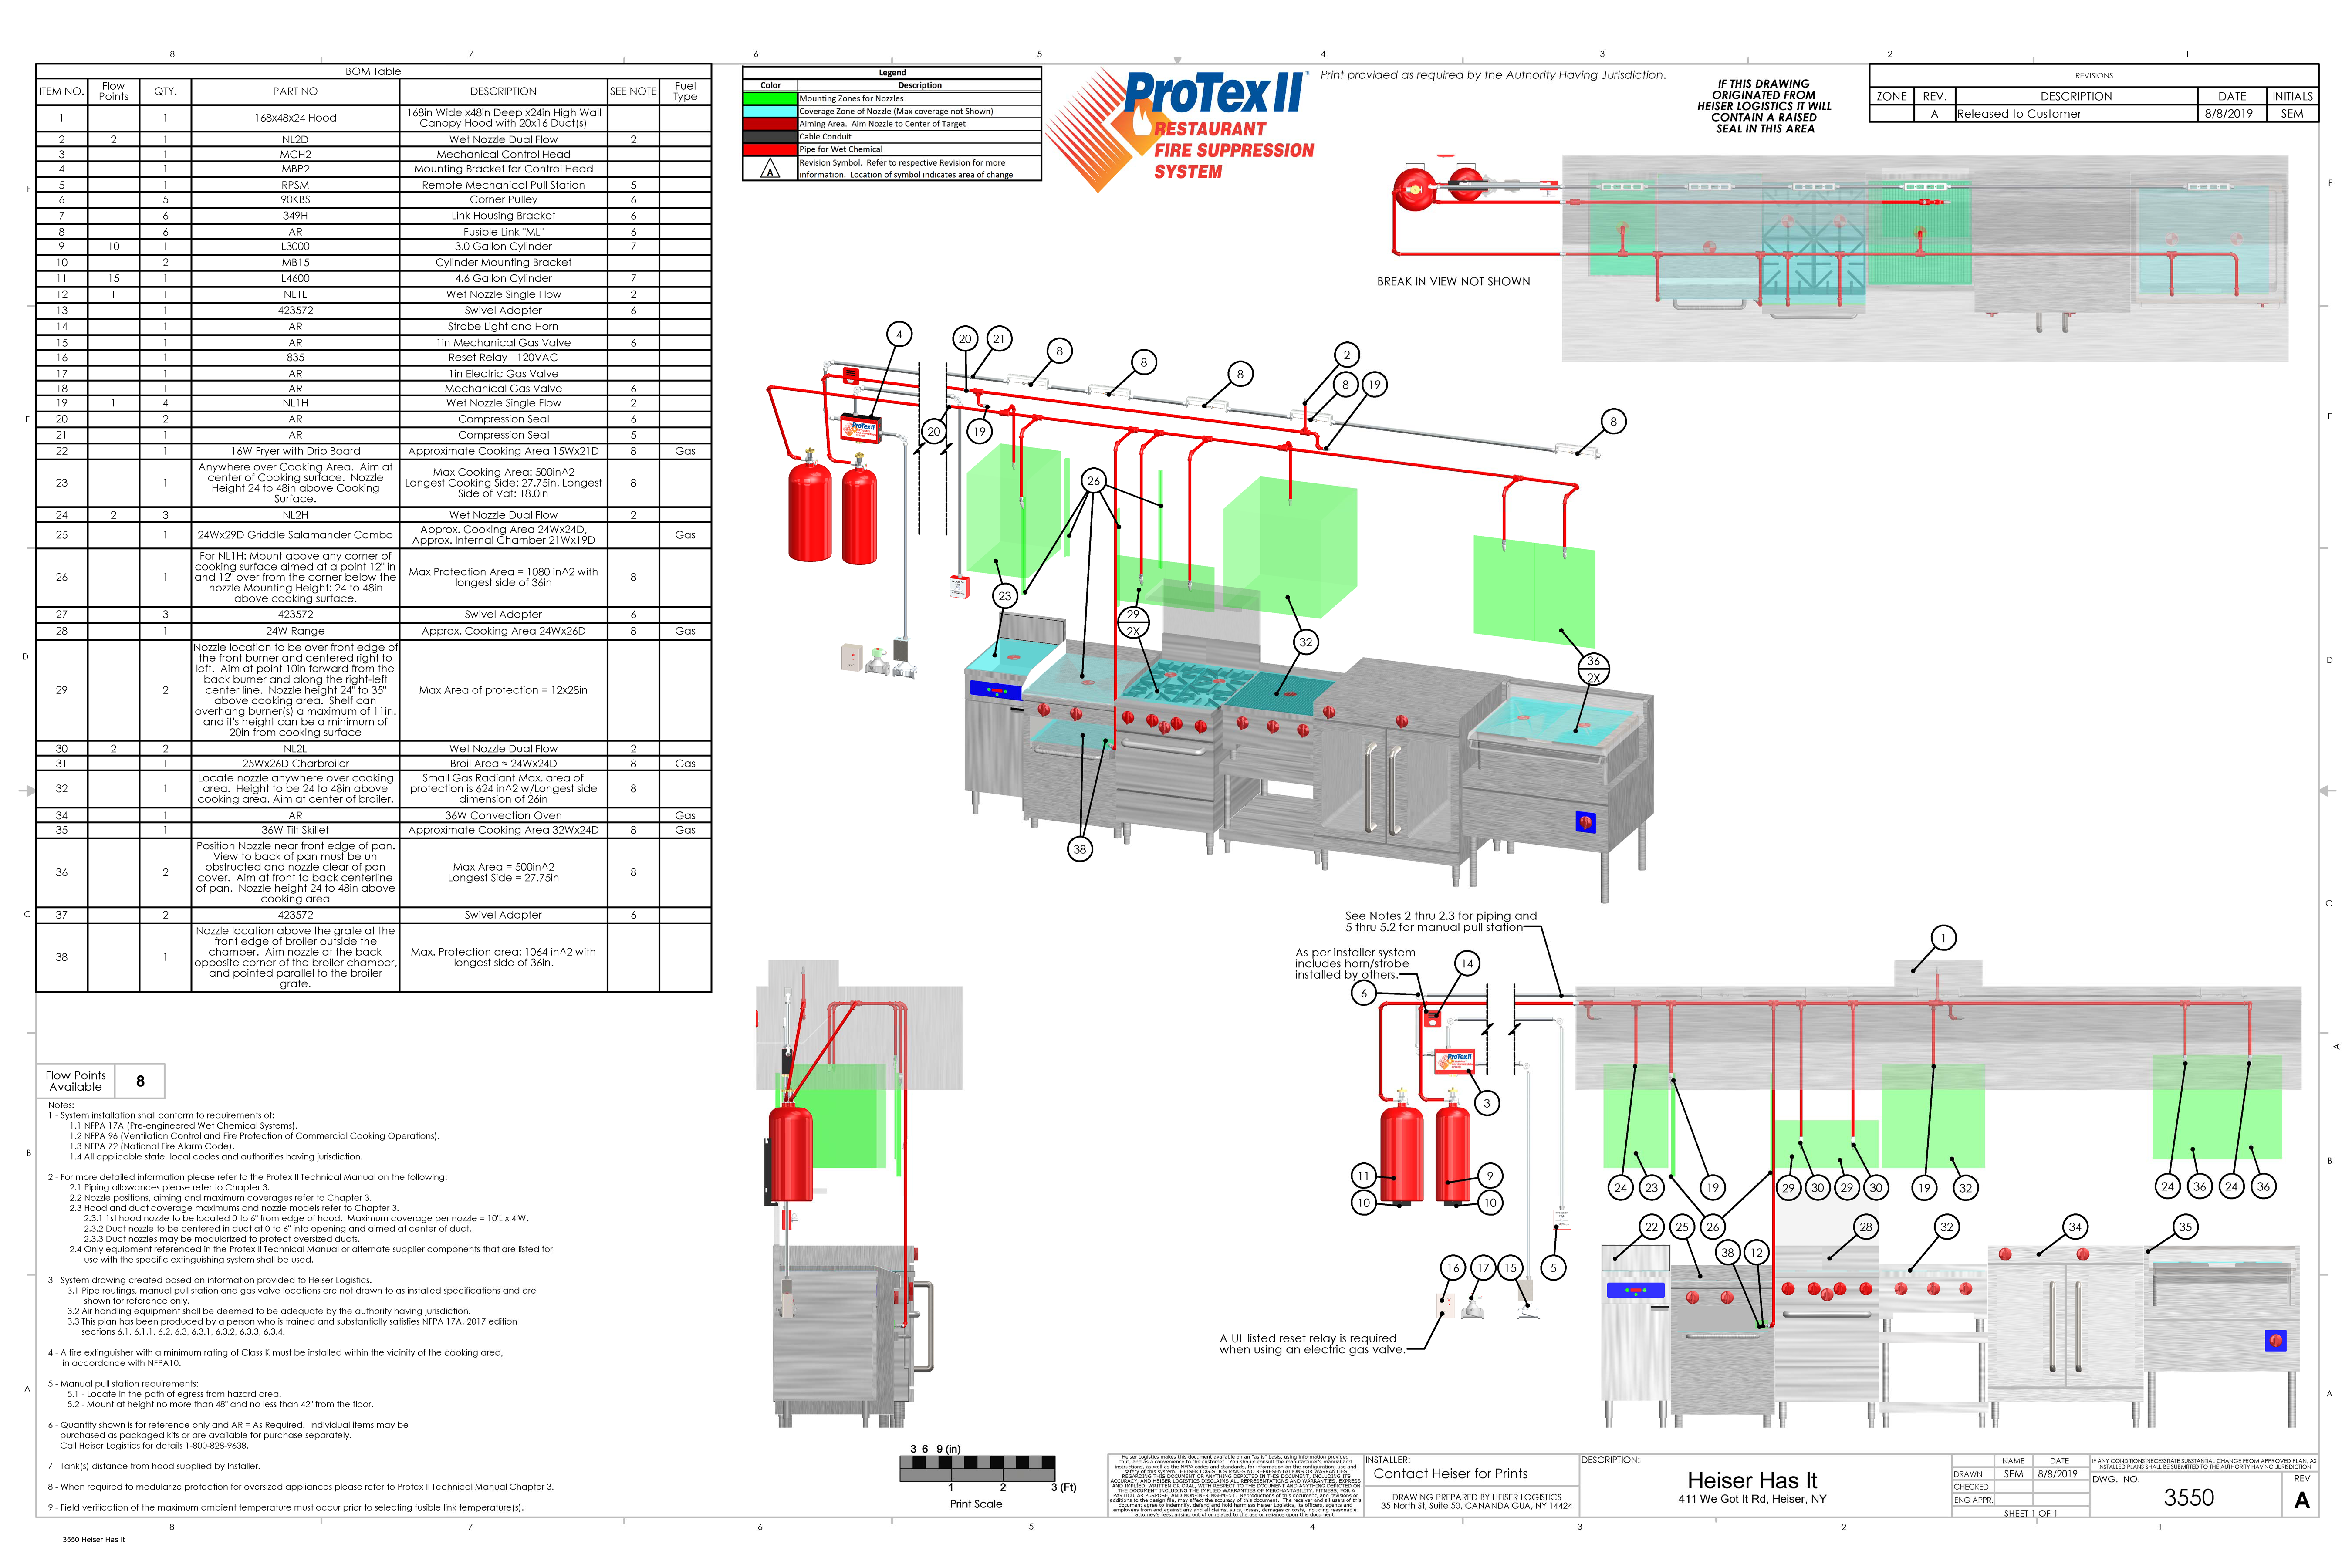 Heiser Protex CAD Drawing